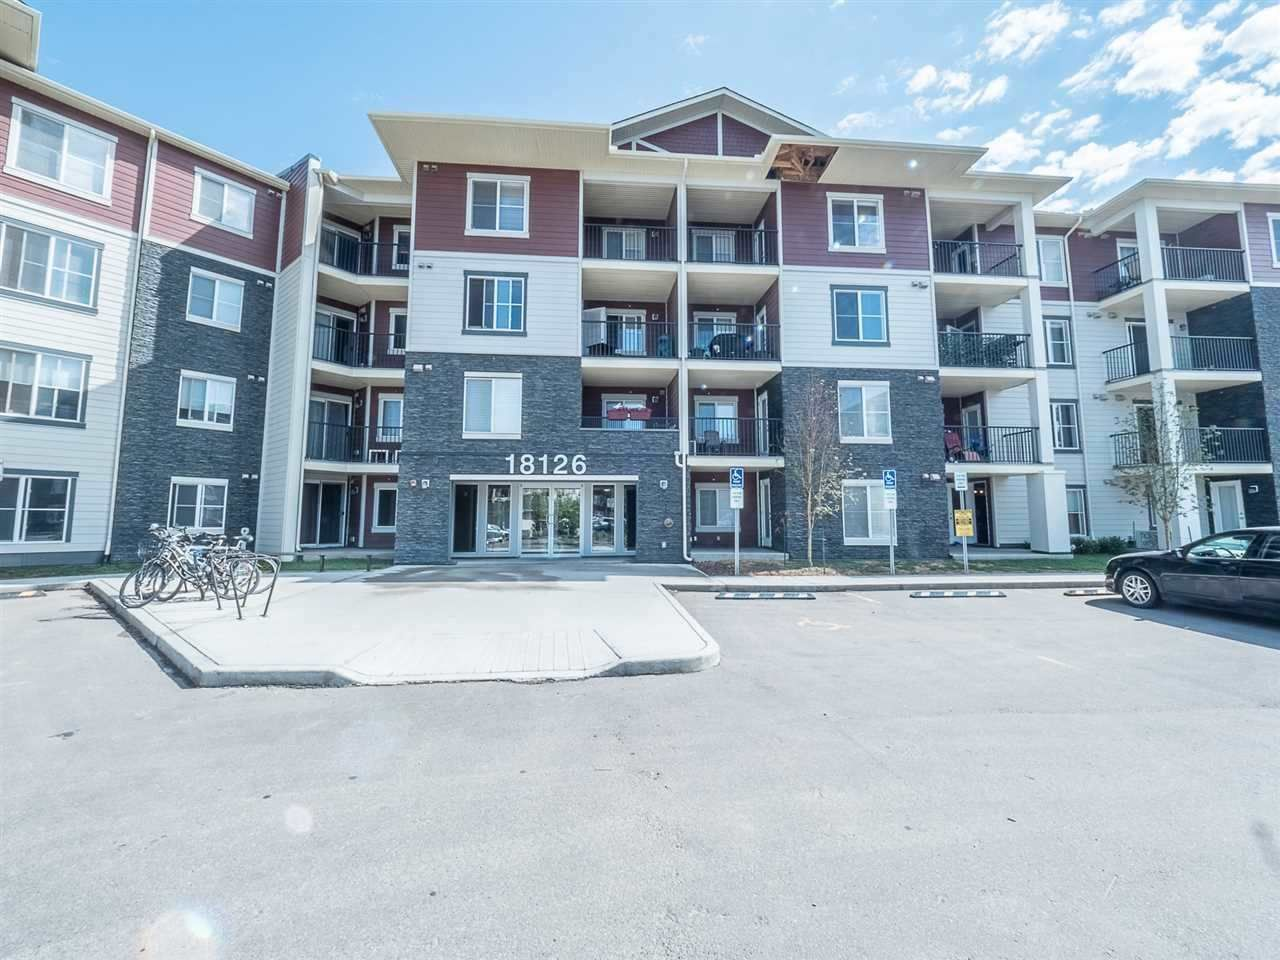 Main Photo: 217 18126 77 Street in Edmonton: Zone 28 Condo for sale : MLS®# E4241570